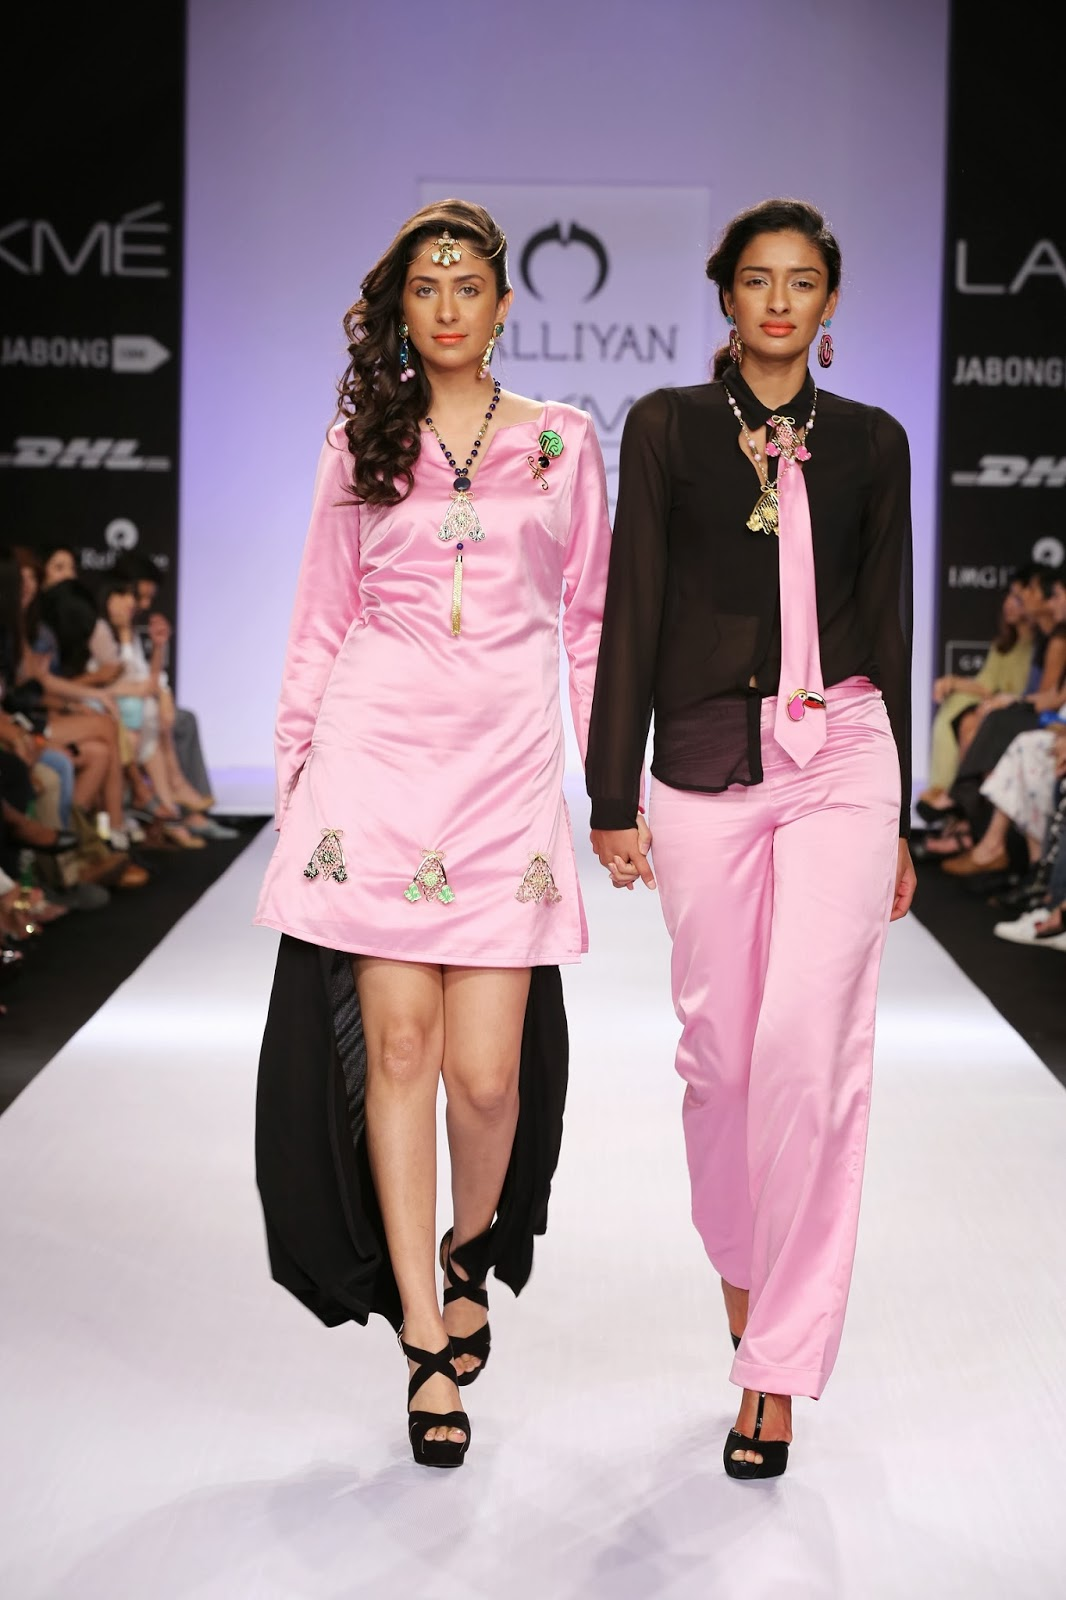 High shine satin and luxurious fabrics created an impact on the ramp, when unisex brooches were turned into medal necklaces, while ear cuffs, head gears and tassels were multi-functional accessories.